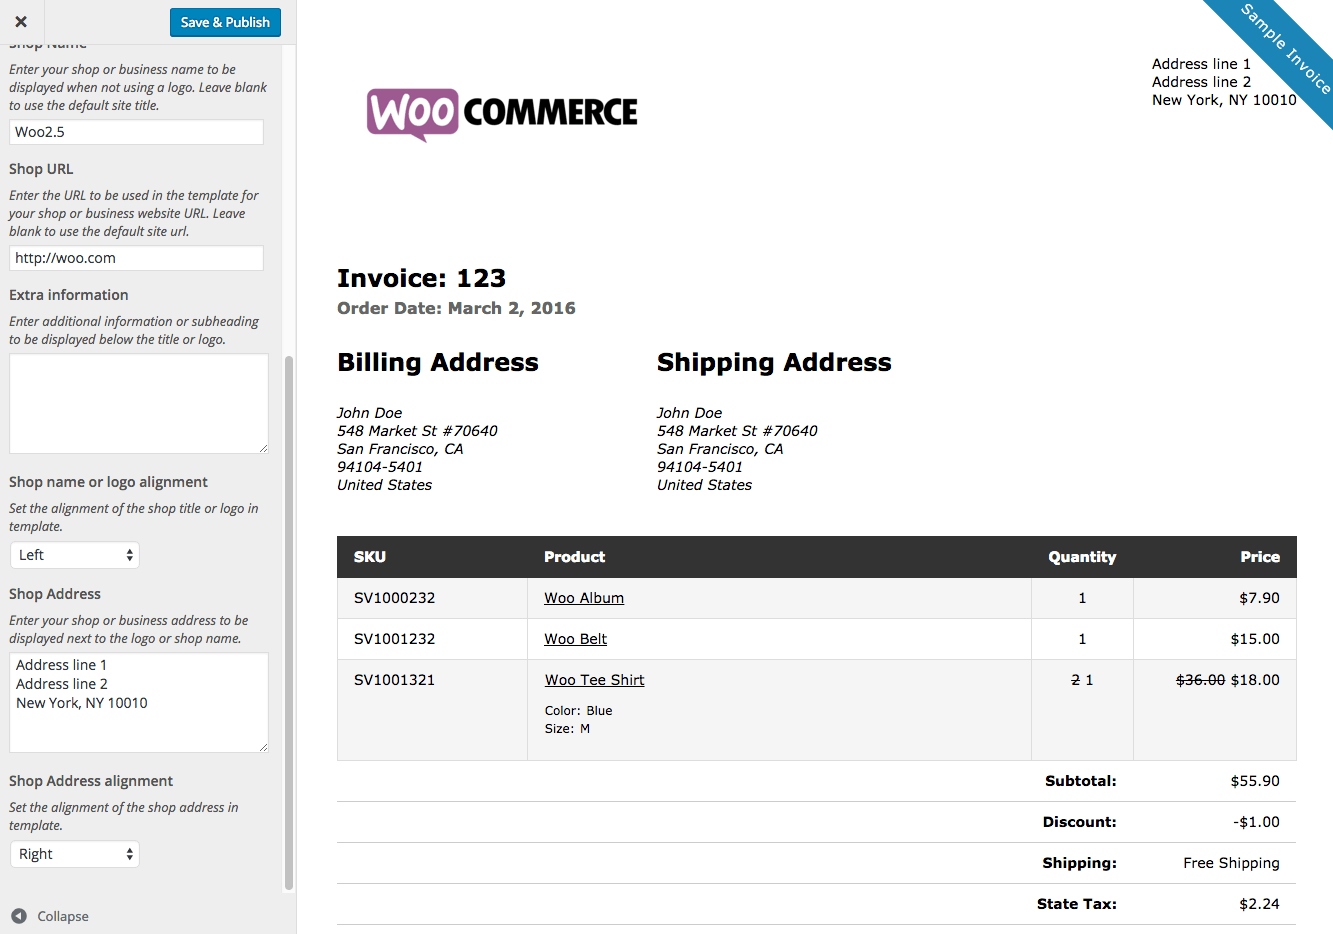 Soulfulpowerus  Inspiring Woocommerce Print Invoices Amp Packing Lists  Woocommerce Docs With Great Woocommerce Print Invoices  Packing Lists Customizer With Divine Invoice Types Also Quickbook Invoices In Addition Service Invoice Sample And Wave Invoicing Review As Well As Auto Shop Invoice Software Additionally Invoice Google From Docswoocommercecom With Soulfulpowerus  Great Woocommerce Print Invoices Amp Packing Lists  Woocommerce Docs With Divine Woocommerce Print Invoices  Packing Lists Customizer And Inspiring Invoice Types Also Quickbook Invoices In Addition Service Invoice Sample From Docswoocommercecom